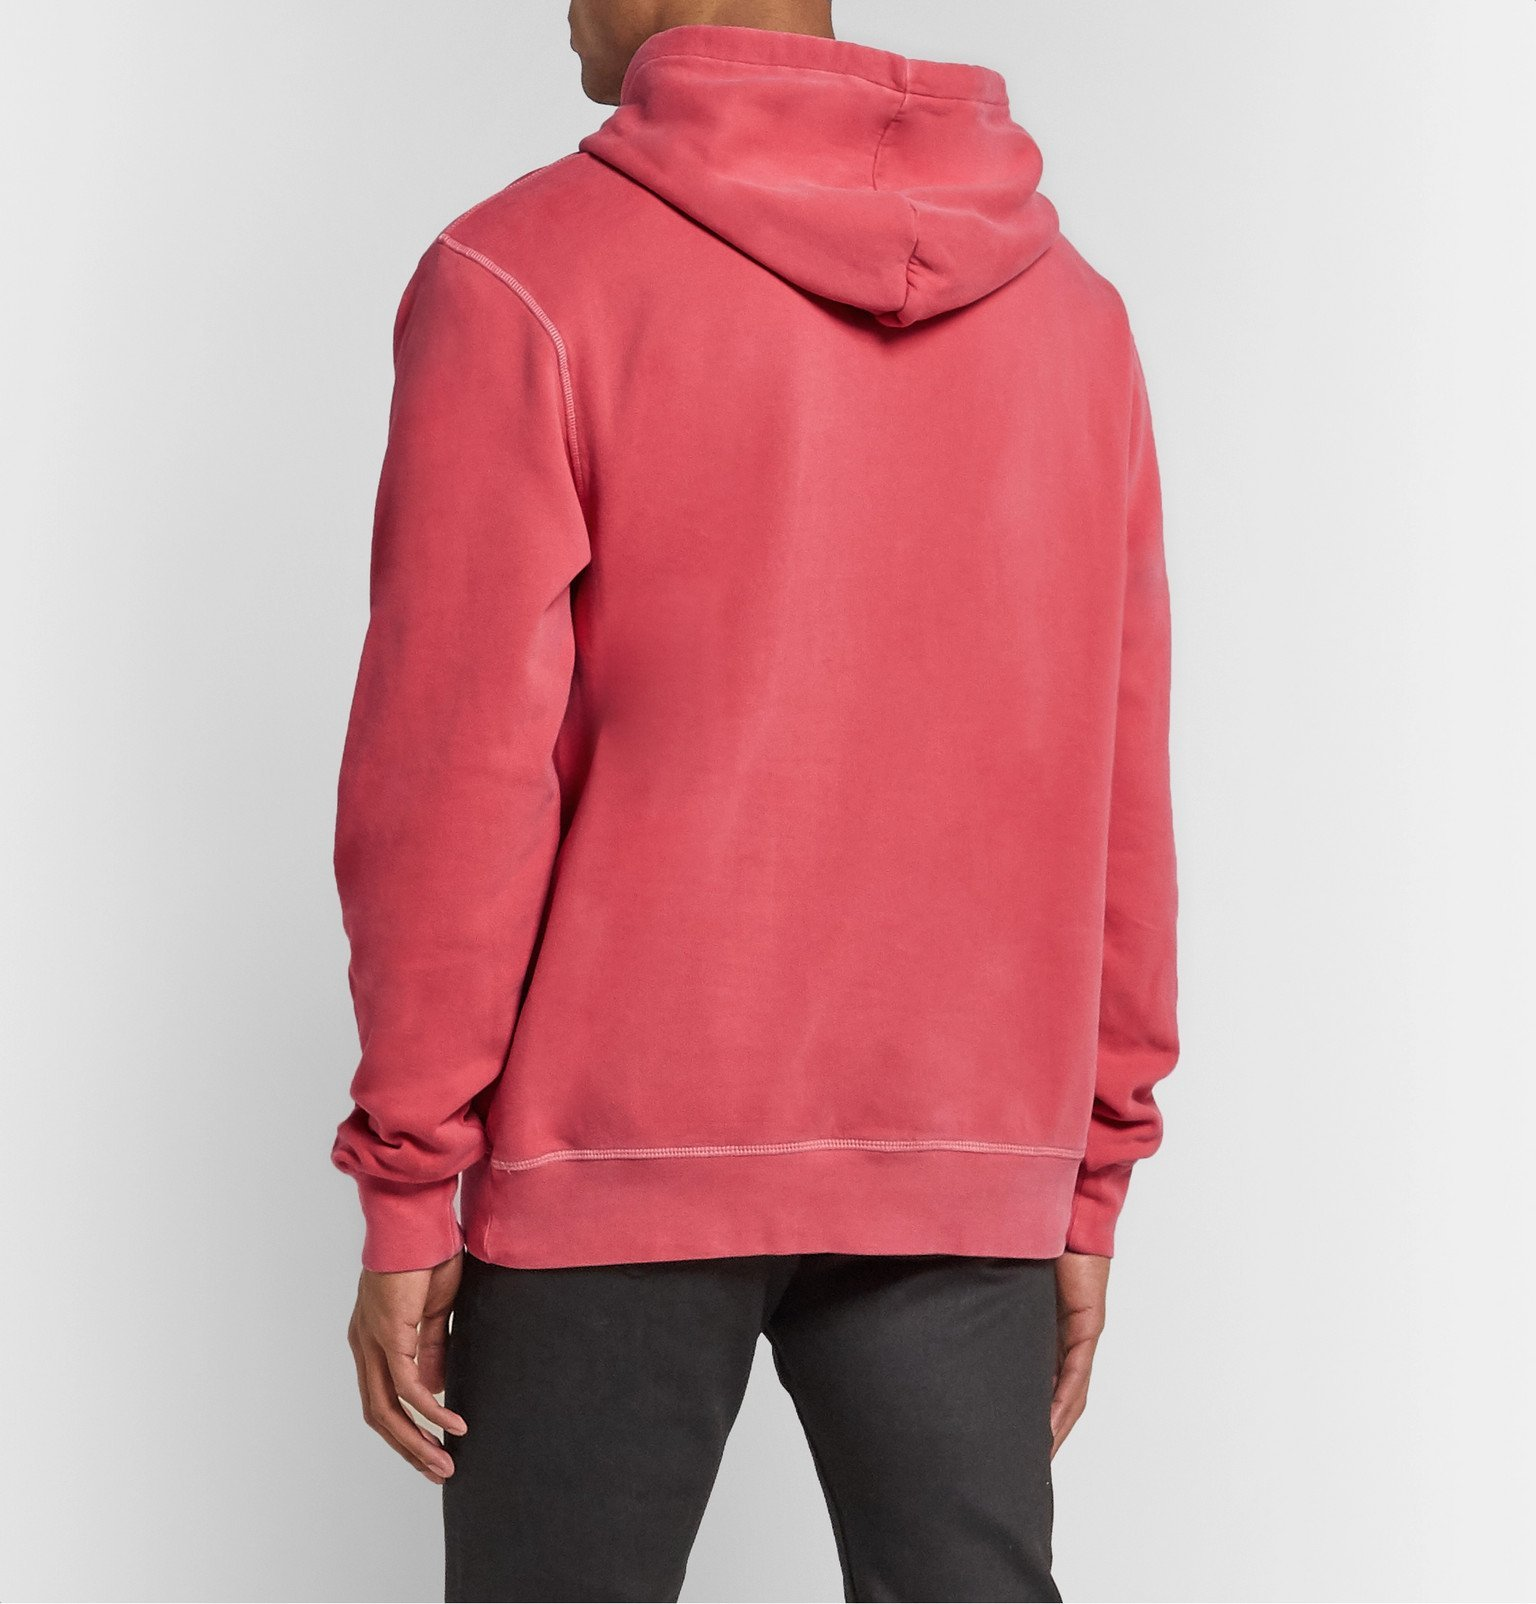 Officine Generale - Olivier Garment-Dyed Loopback Cotton-Jersey Hoodie - Red